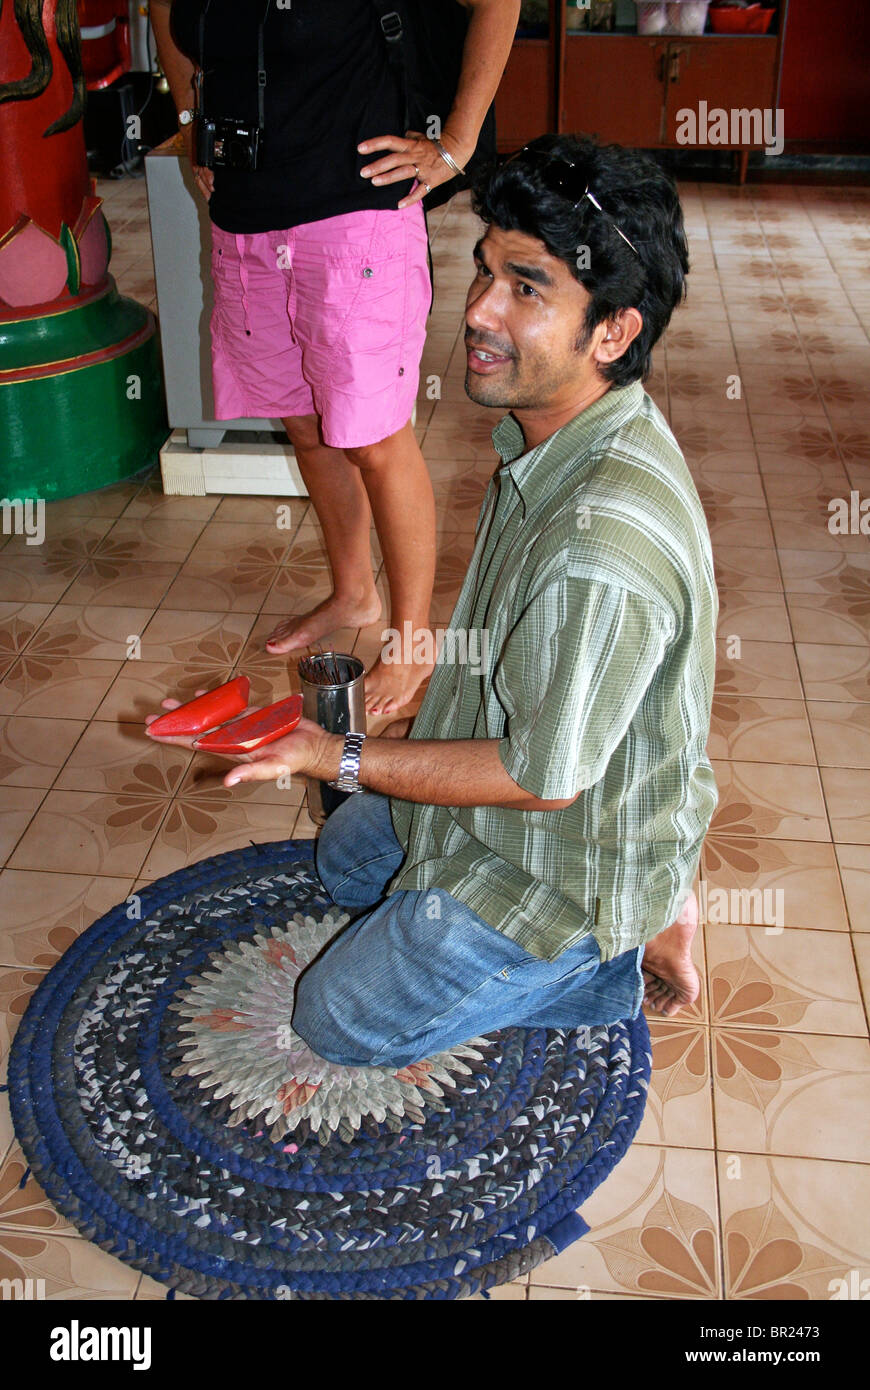 Tour Guide demonstrates fortune telling in a Chinese Taoist Temple, Phuket Island, Thailand, Far East. - Stock Image